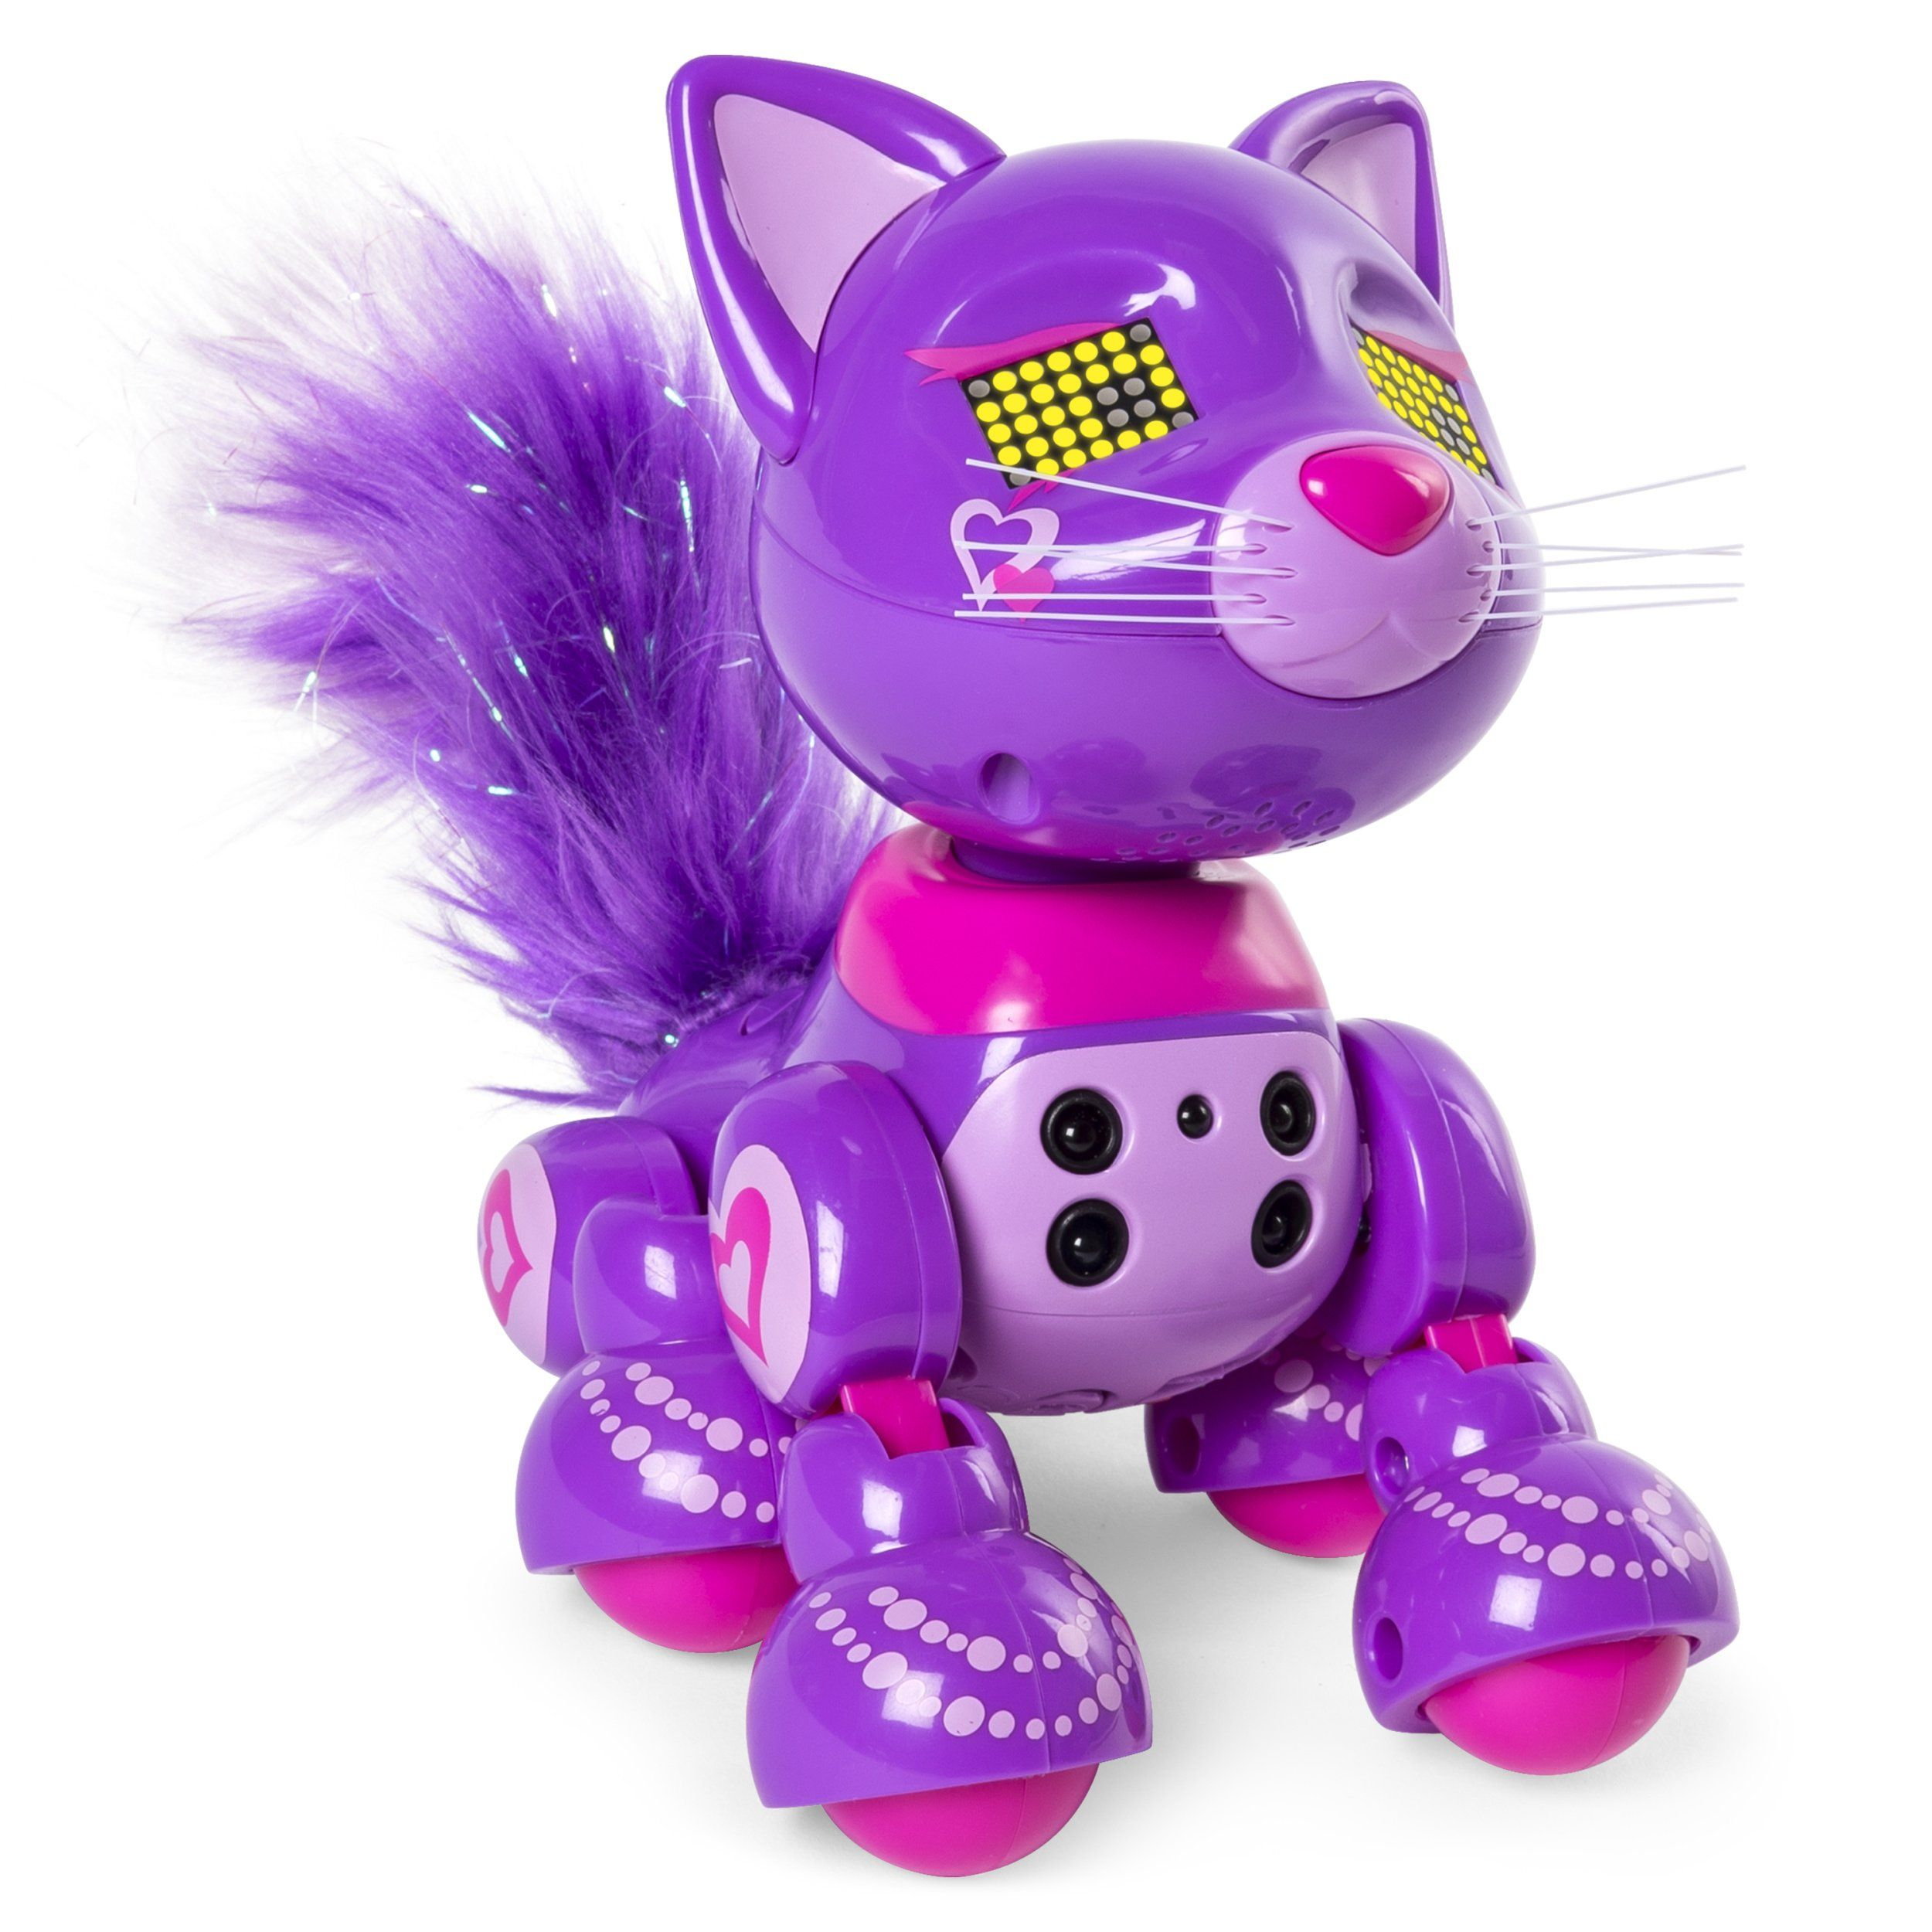 Amazon Com Zoomer Meowzies Posh Interactive Kitten With Lights Sounds And Sensors Toys Games Giftrya Robot Cat Toy Toys For Girls Cool Toys For Girls